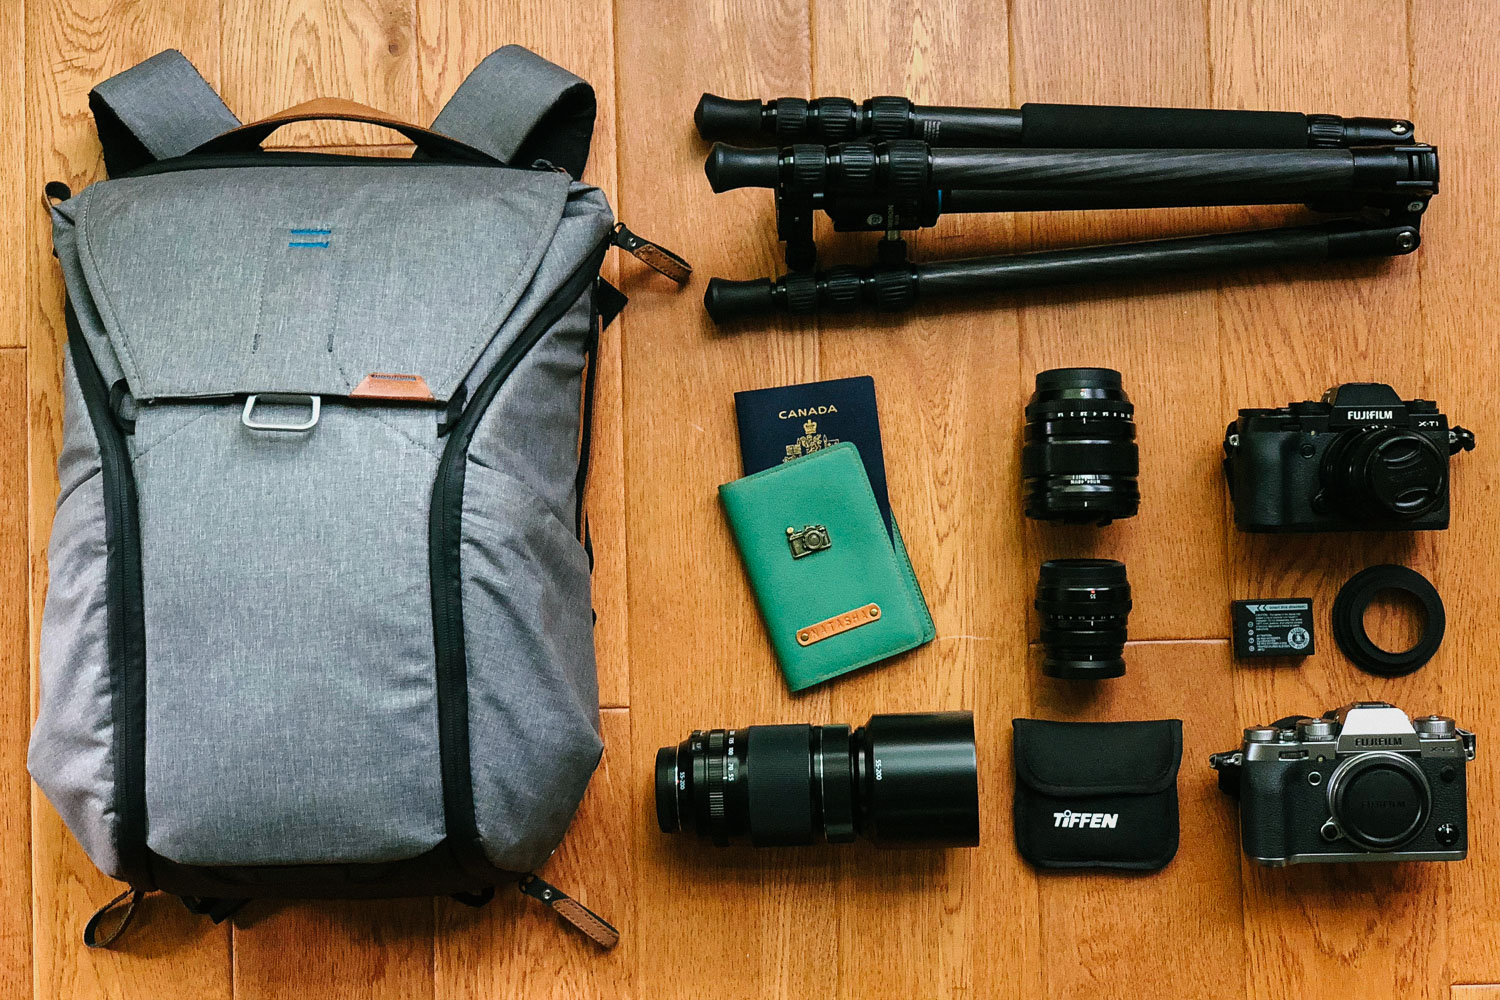 My travel photography camera gear. Including some of my favourite brands like Fujifilm and Peak Design. #fujifilm #fujifilmxt2 #streetphotography #travelphotography #peakdesign